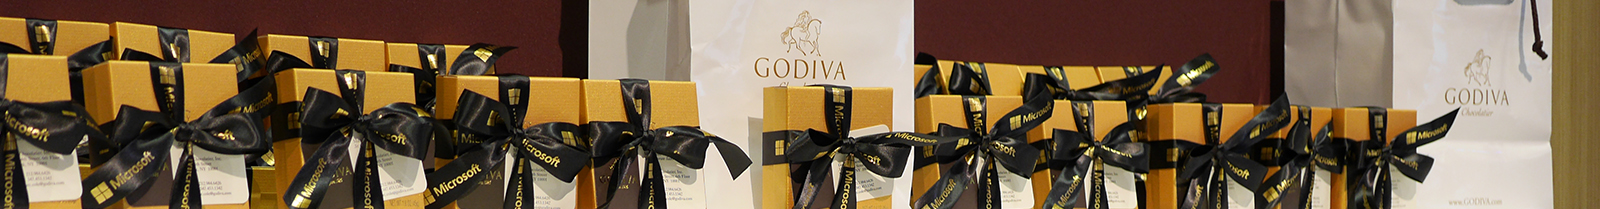 Godiva chocolates for guests of Microsoft Worldwide Partner Conference